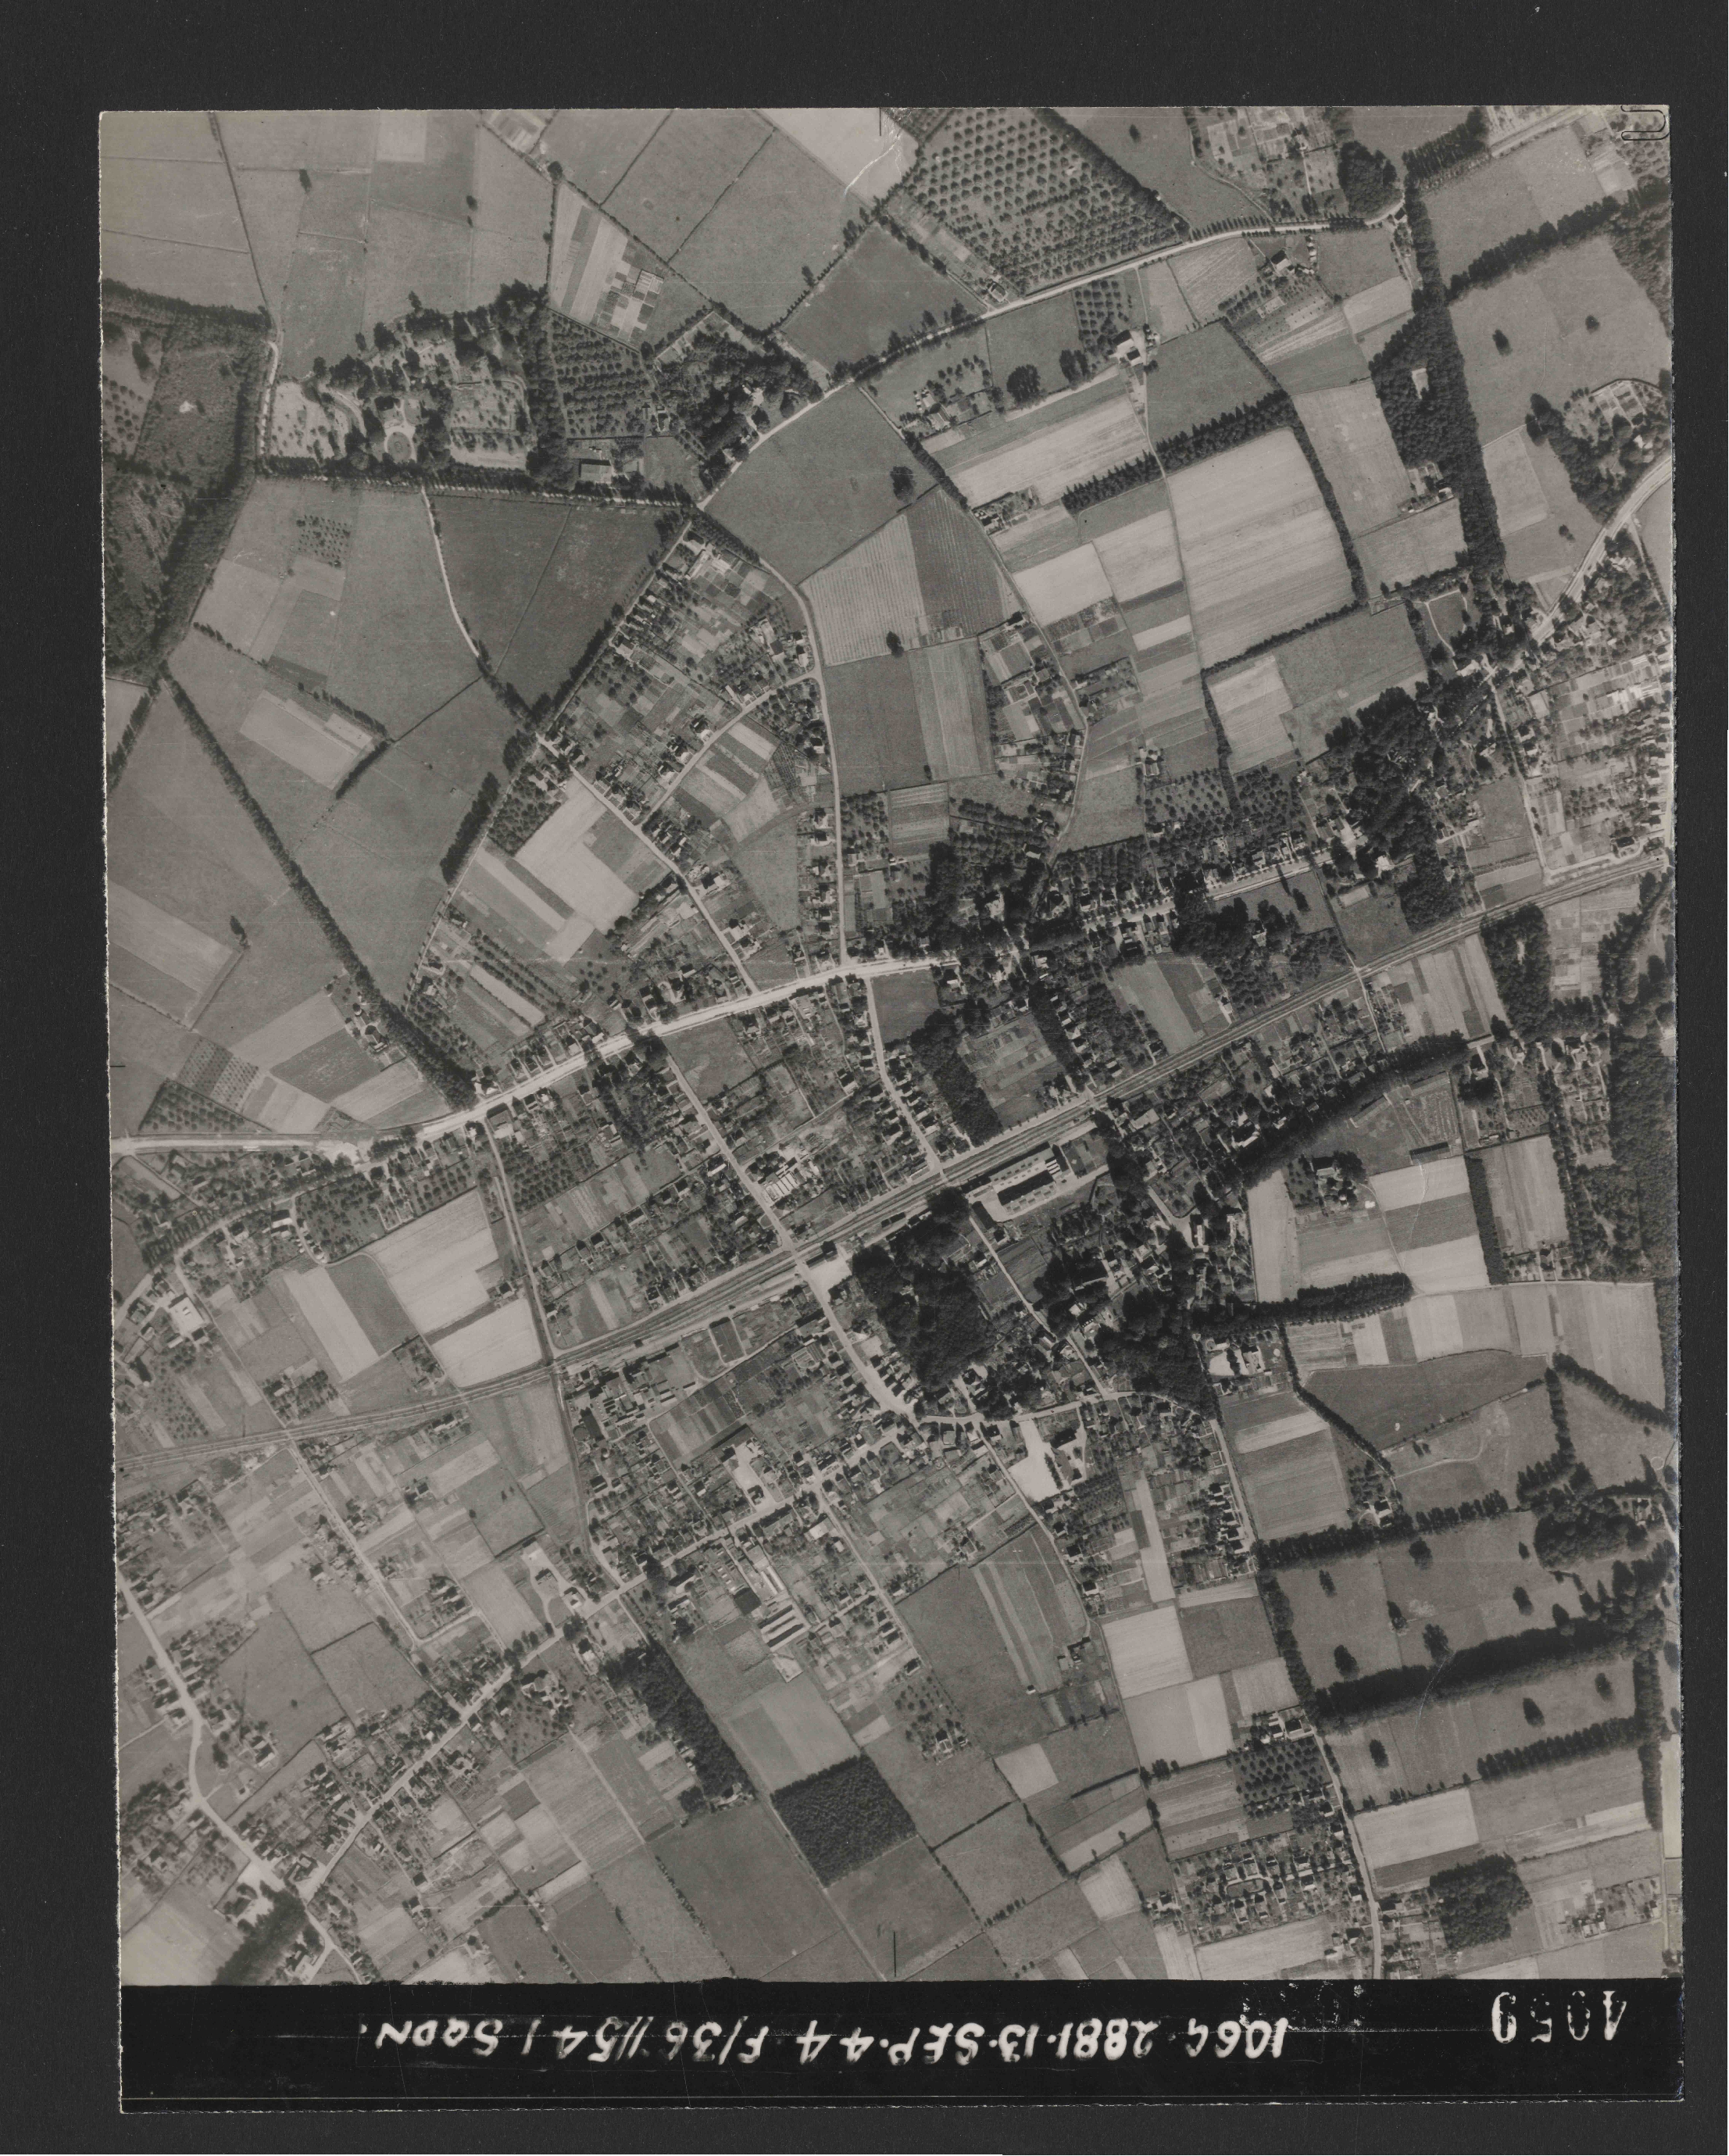 Collection RAF aerial photos 1940-1945 - flight 298, run 17, photo 4059